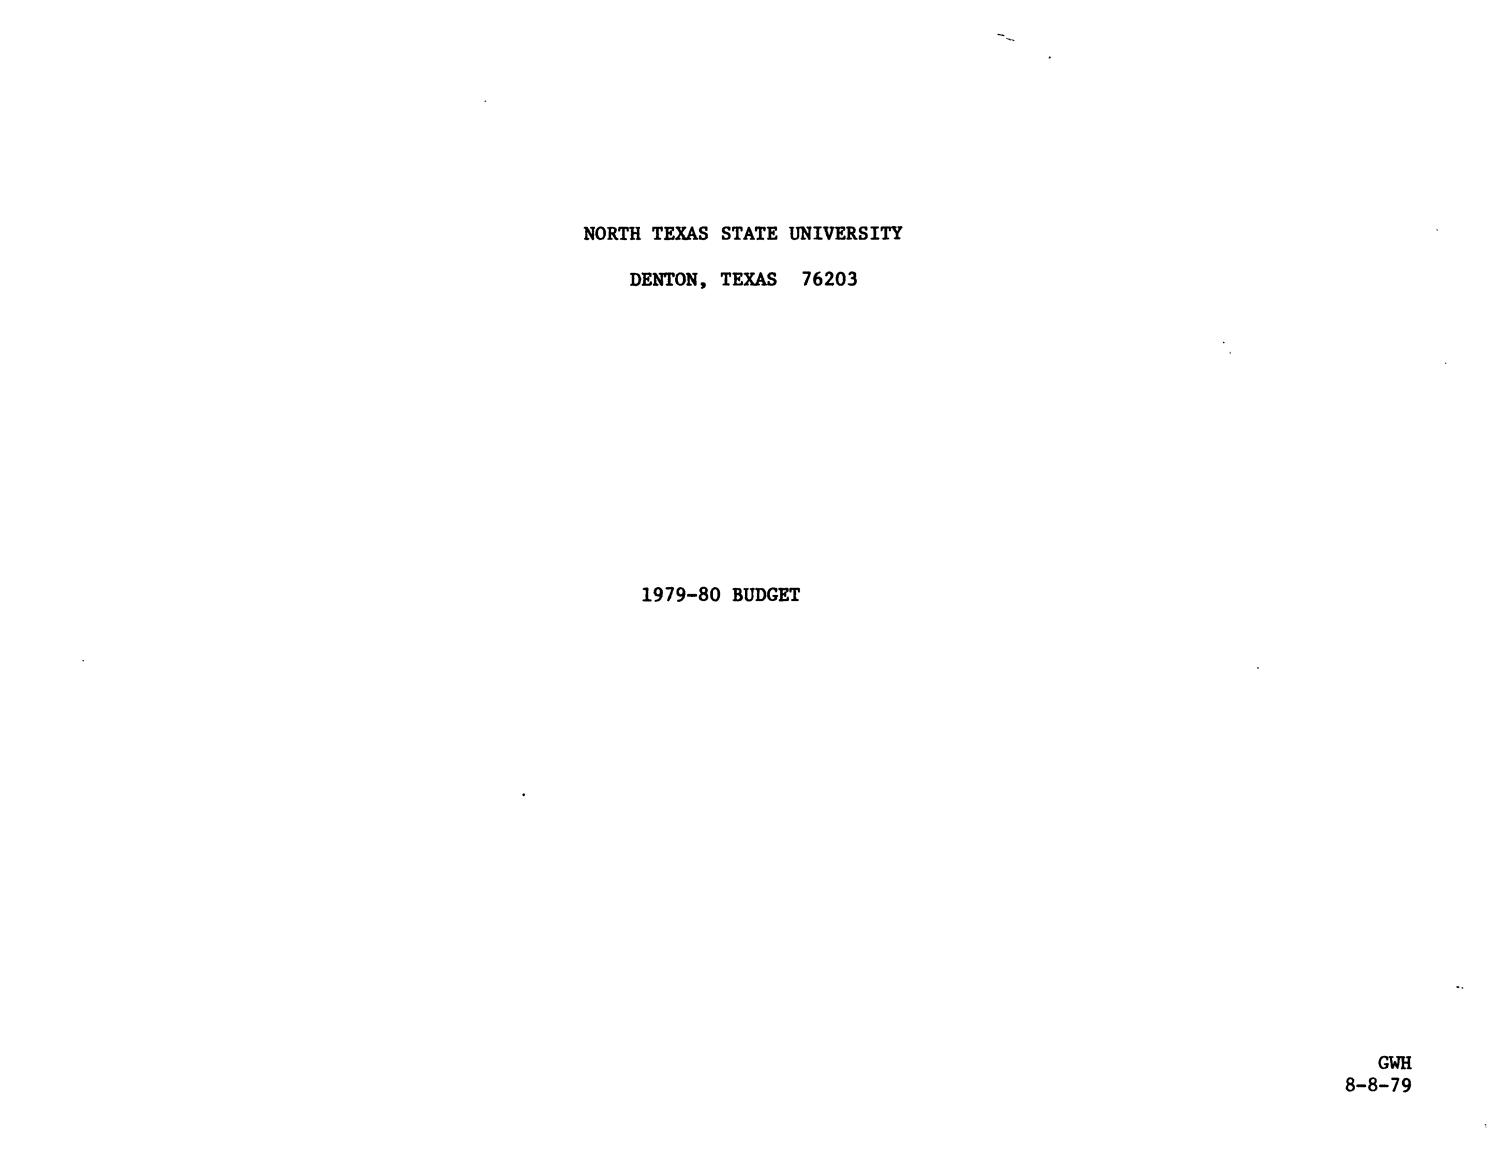 North Texas State University Budget: 1979-1980                                                                                                      Title Page